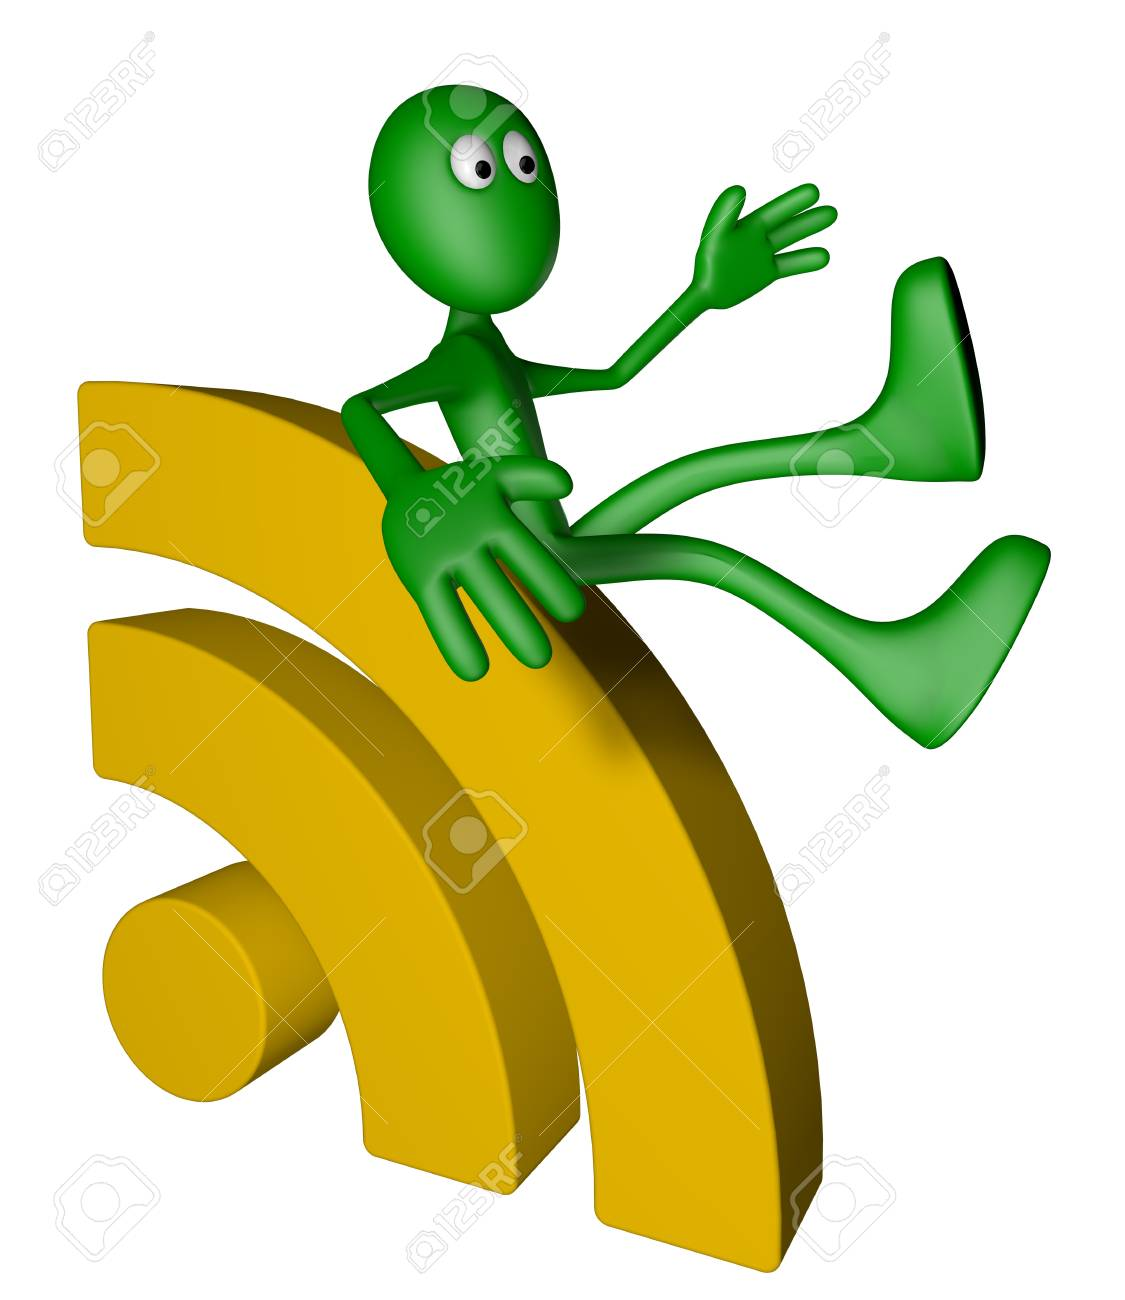 green guy and rss symbol - 3d illustration Stock Photo - 13109066